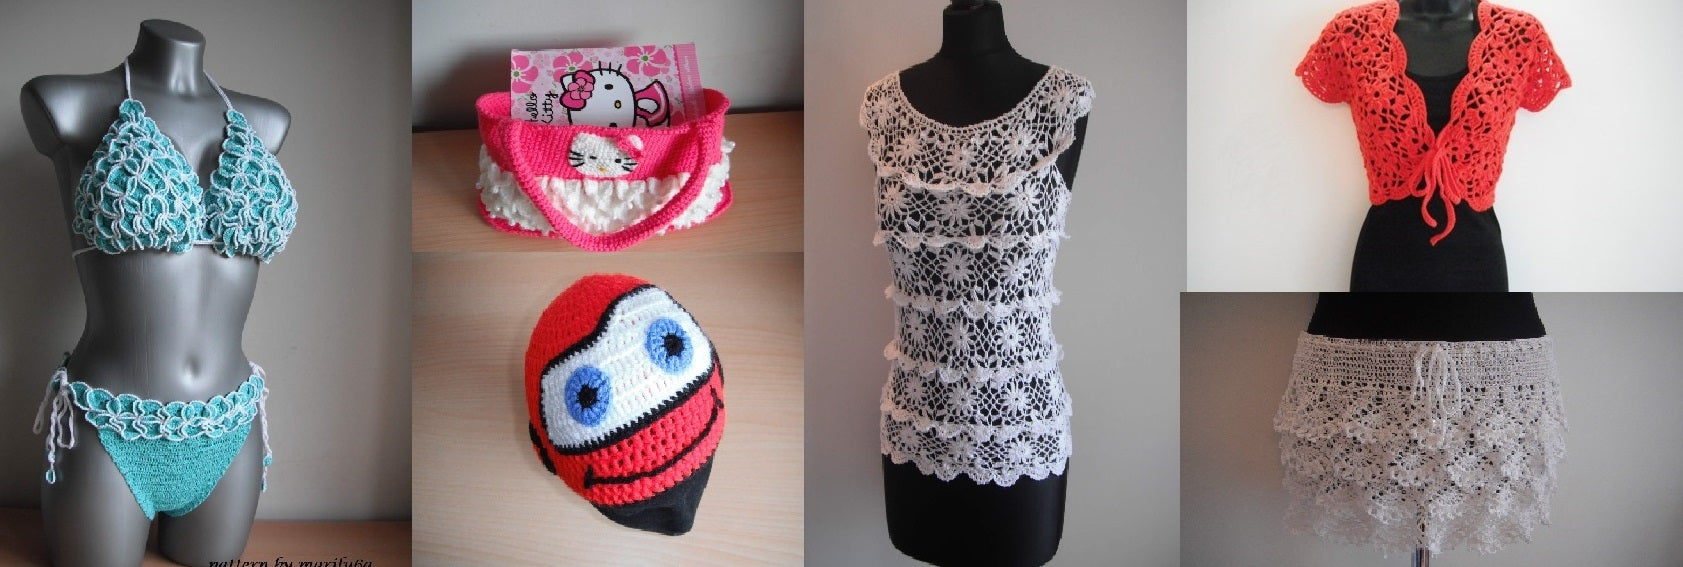 Crochet Patterns and free video tutorials by Marifu6a http://www.artfire.com/ext/shop/home/marifu6a